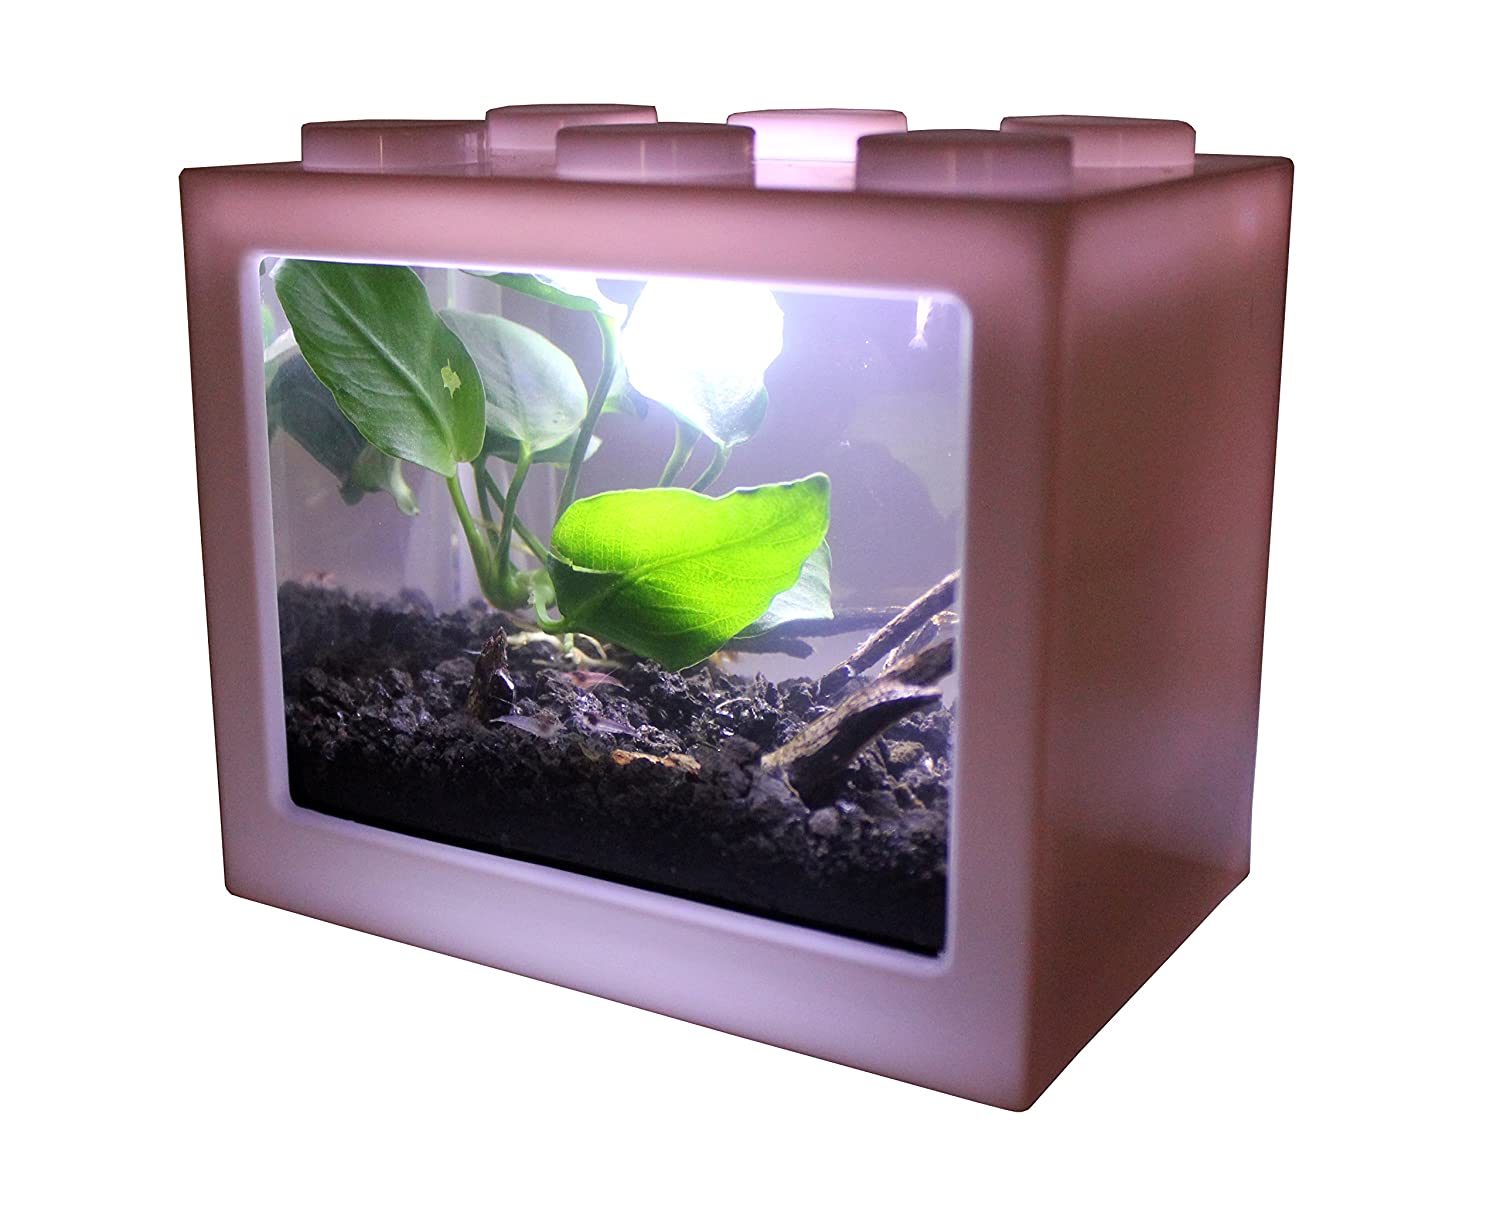 AquaticHI Mini Tank, Extra Small, Nano Desktop Aquarium/Fish Tank/Terrarium, Perfect